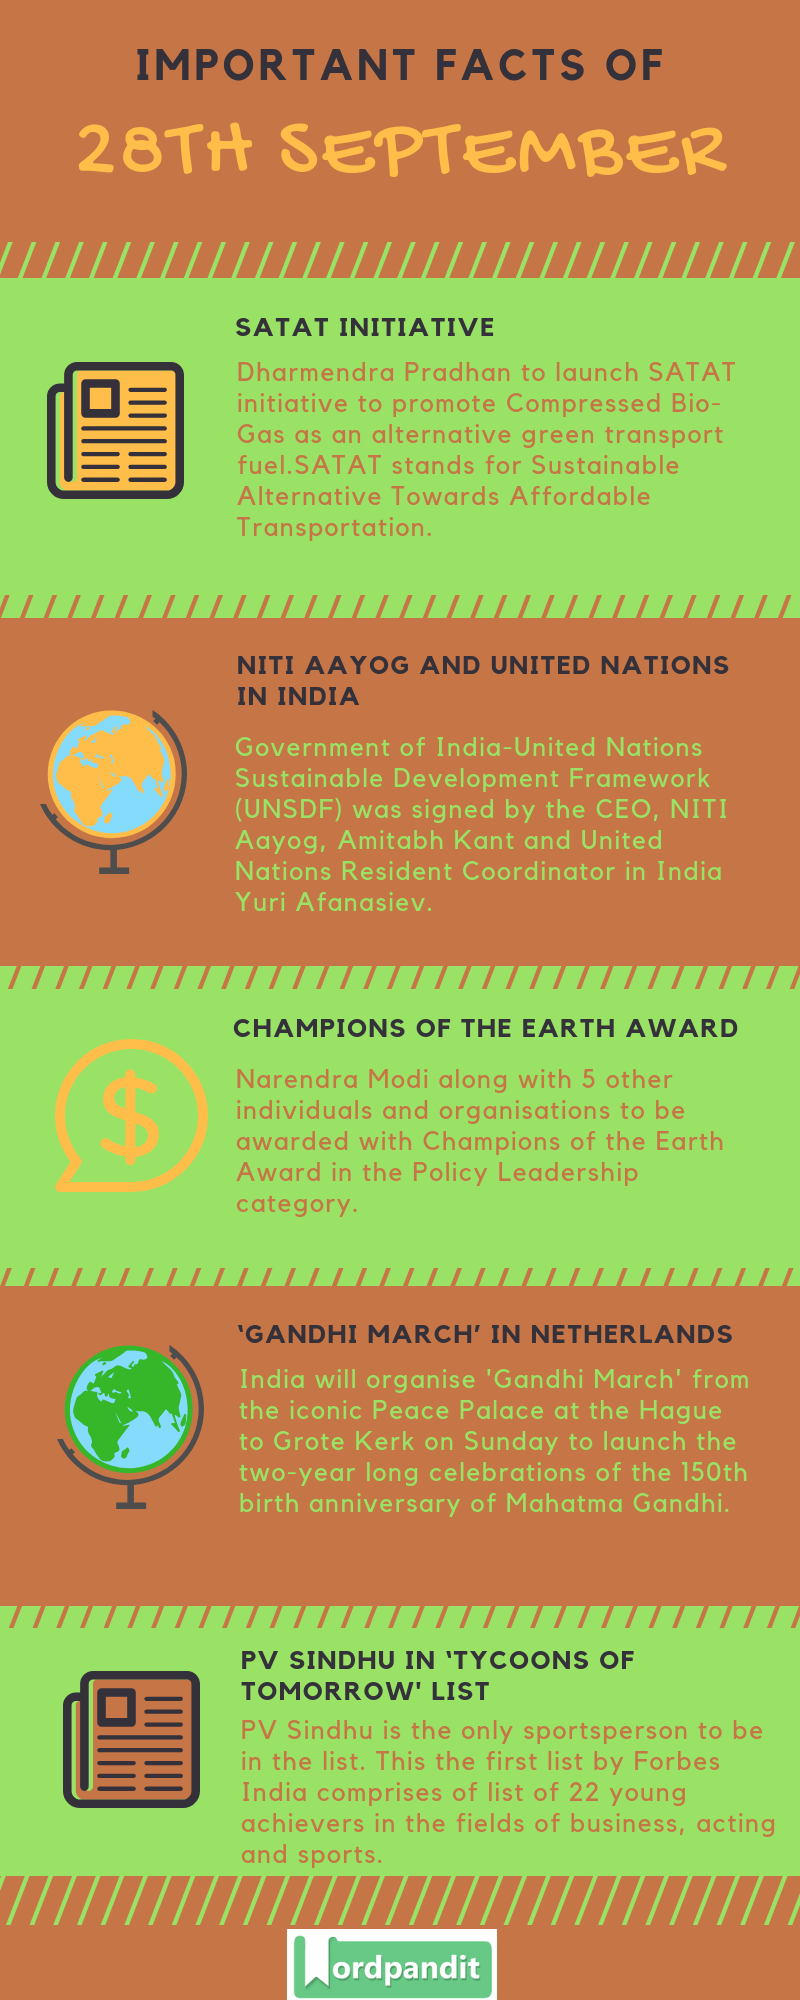 Daily Current Affairs 28 September 2018 Current Affairs Quiz 28 September 2018 Current Affairs Infographic